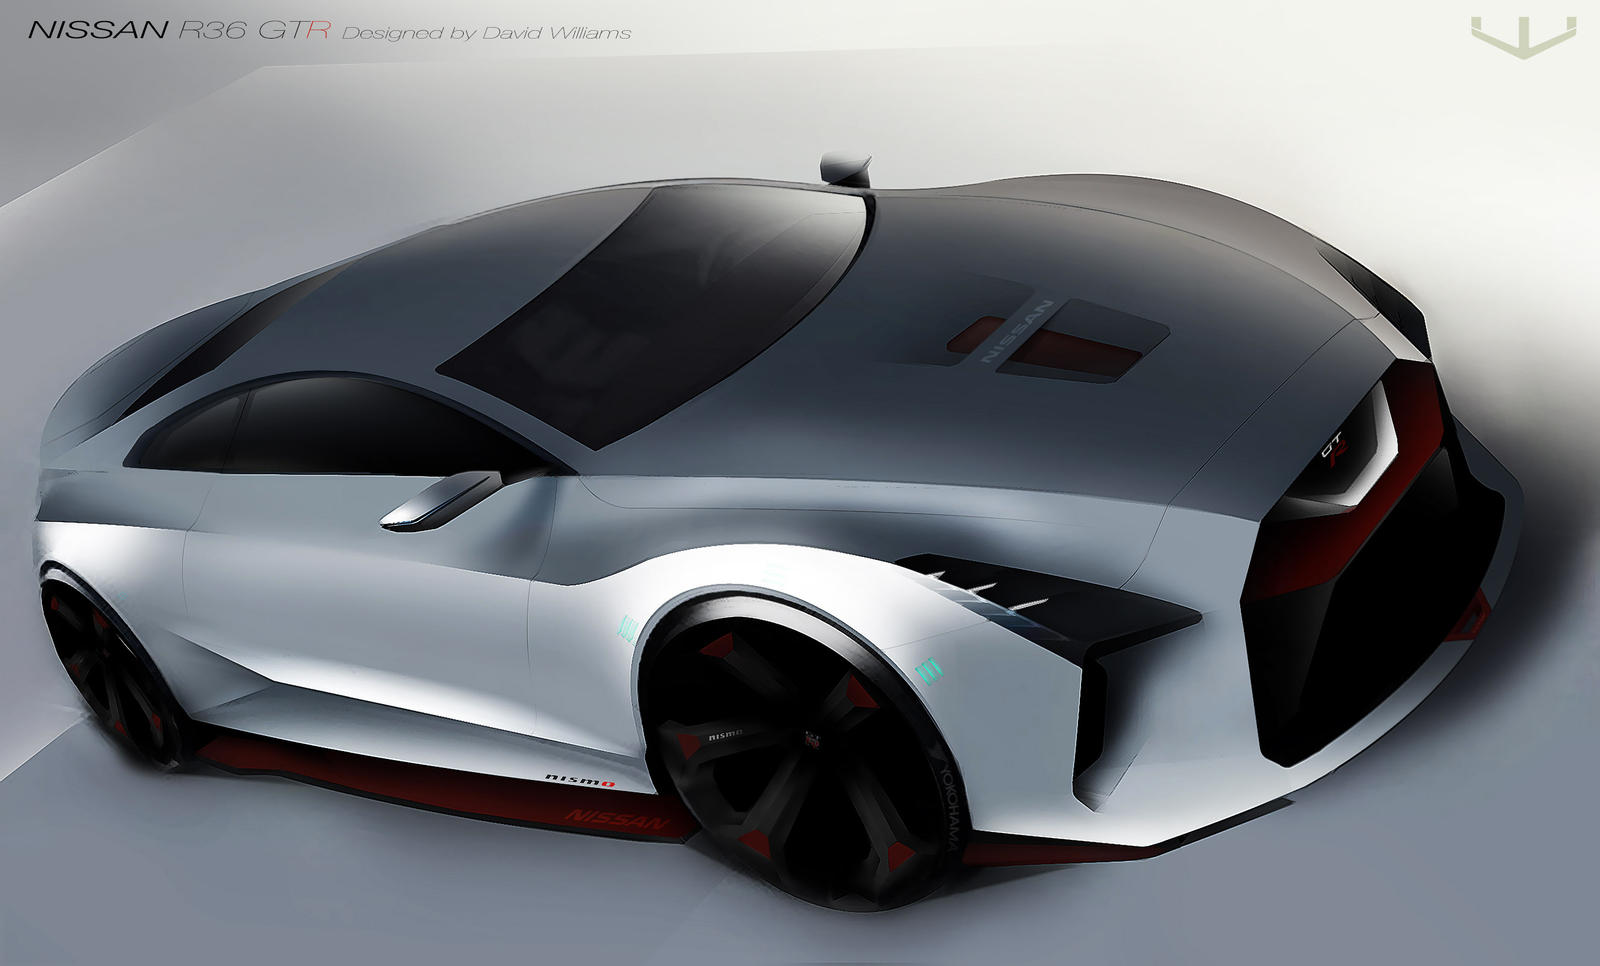 R36 GTR concept by wizzoo7 on DeviantArt